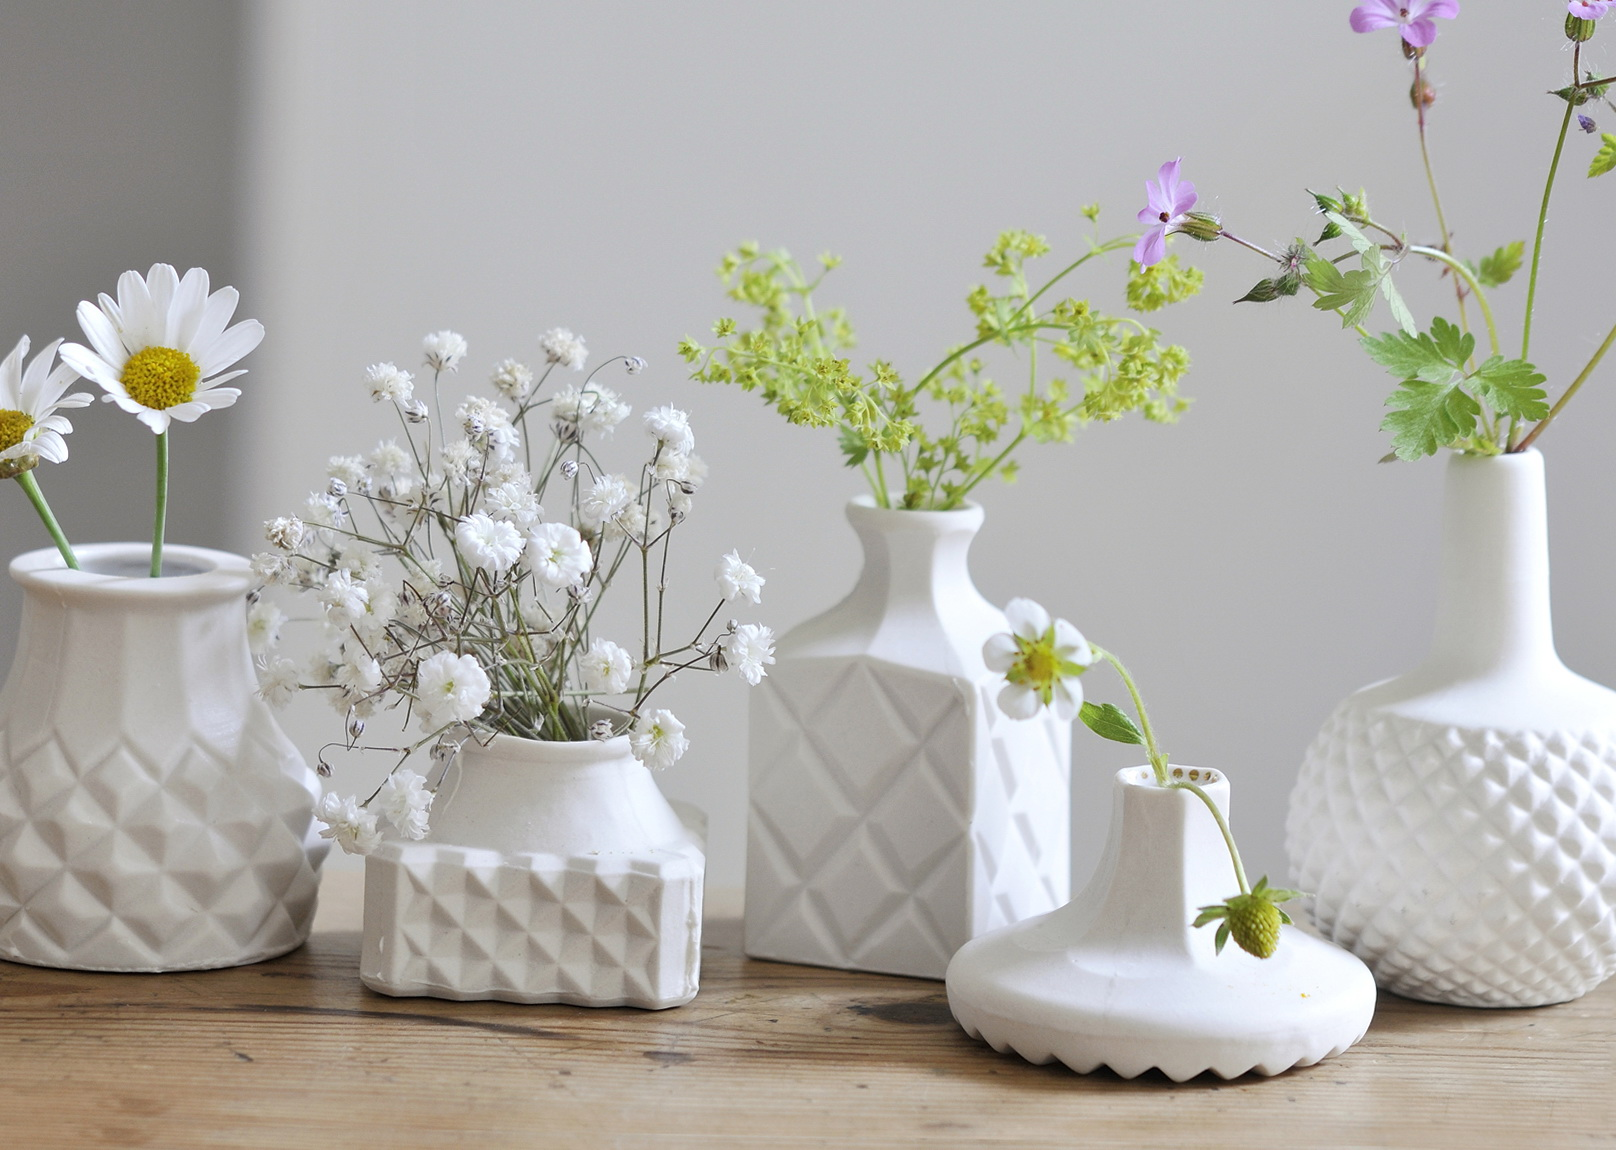 http://www.theenergylibrary.com/wp-content/uploads/2015/01/white-ceramic-vases-for-wedding.jpg